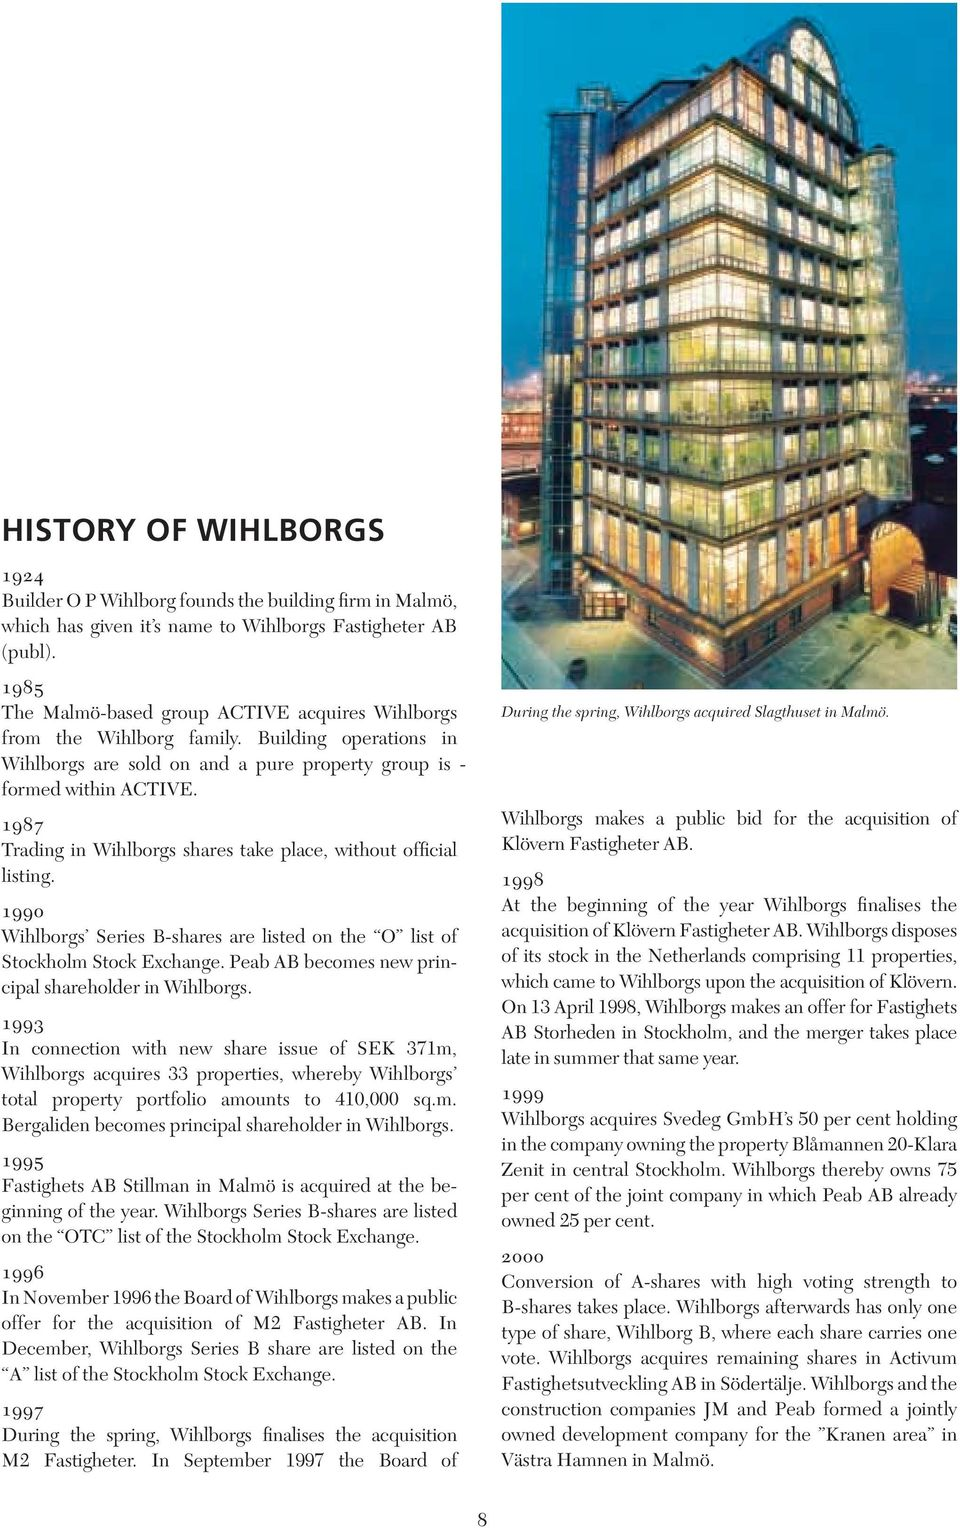 1987 Trading in Wihlborgs shares take place, without official listing. 1990 Wihlborgs Series B-shares are listed on the O list of Stockholm Stock Exchange.